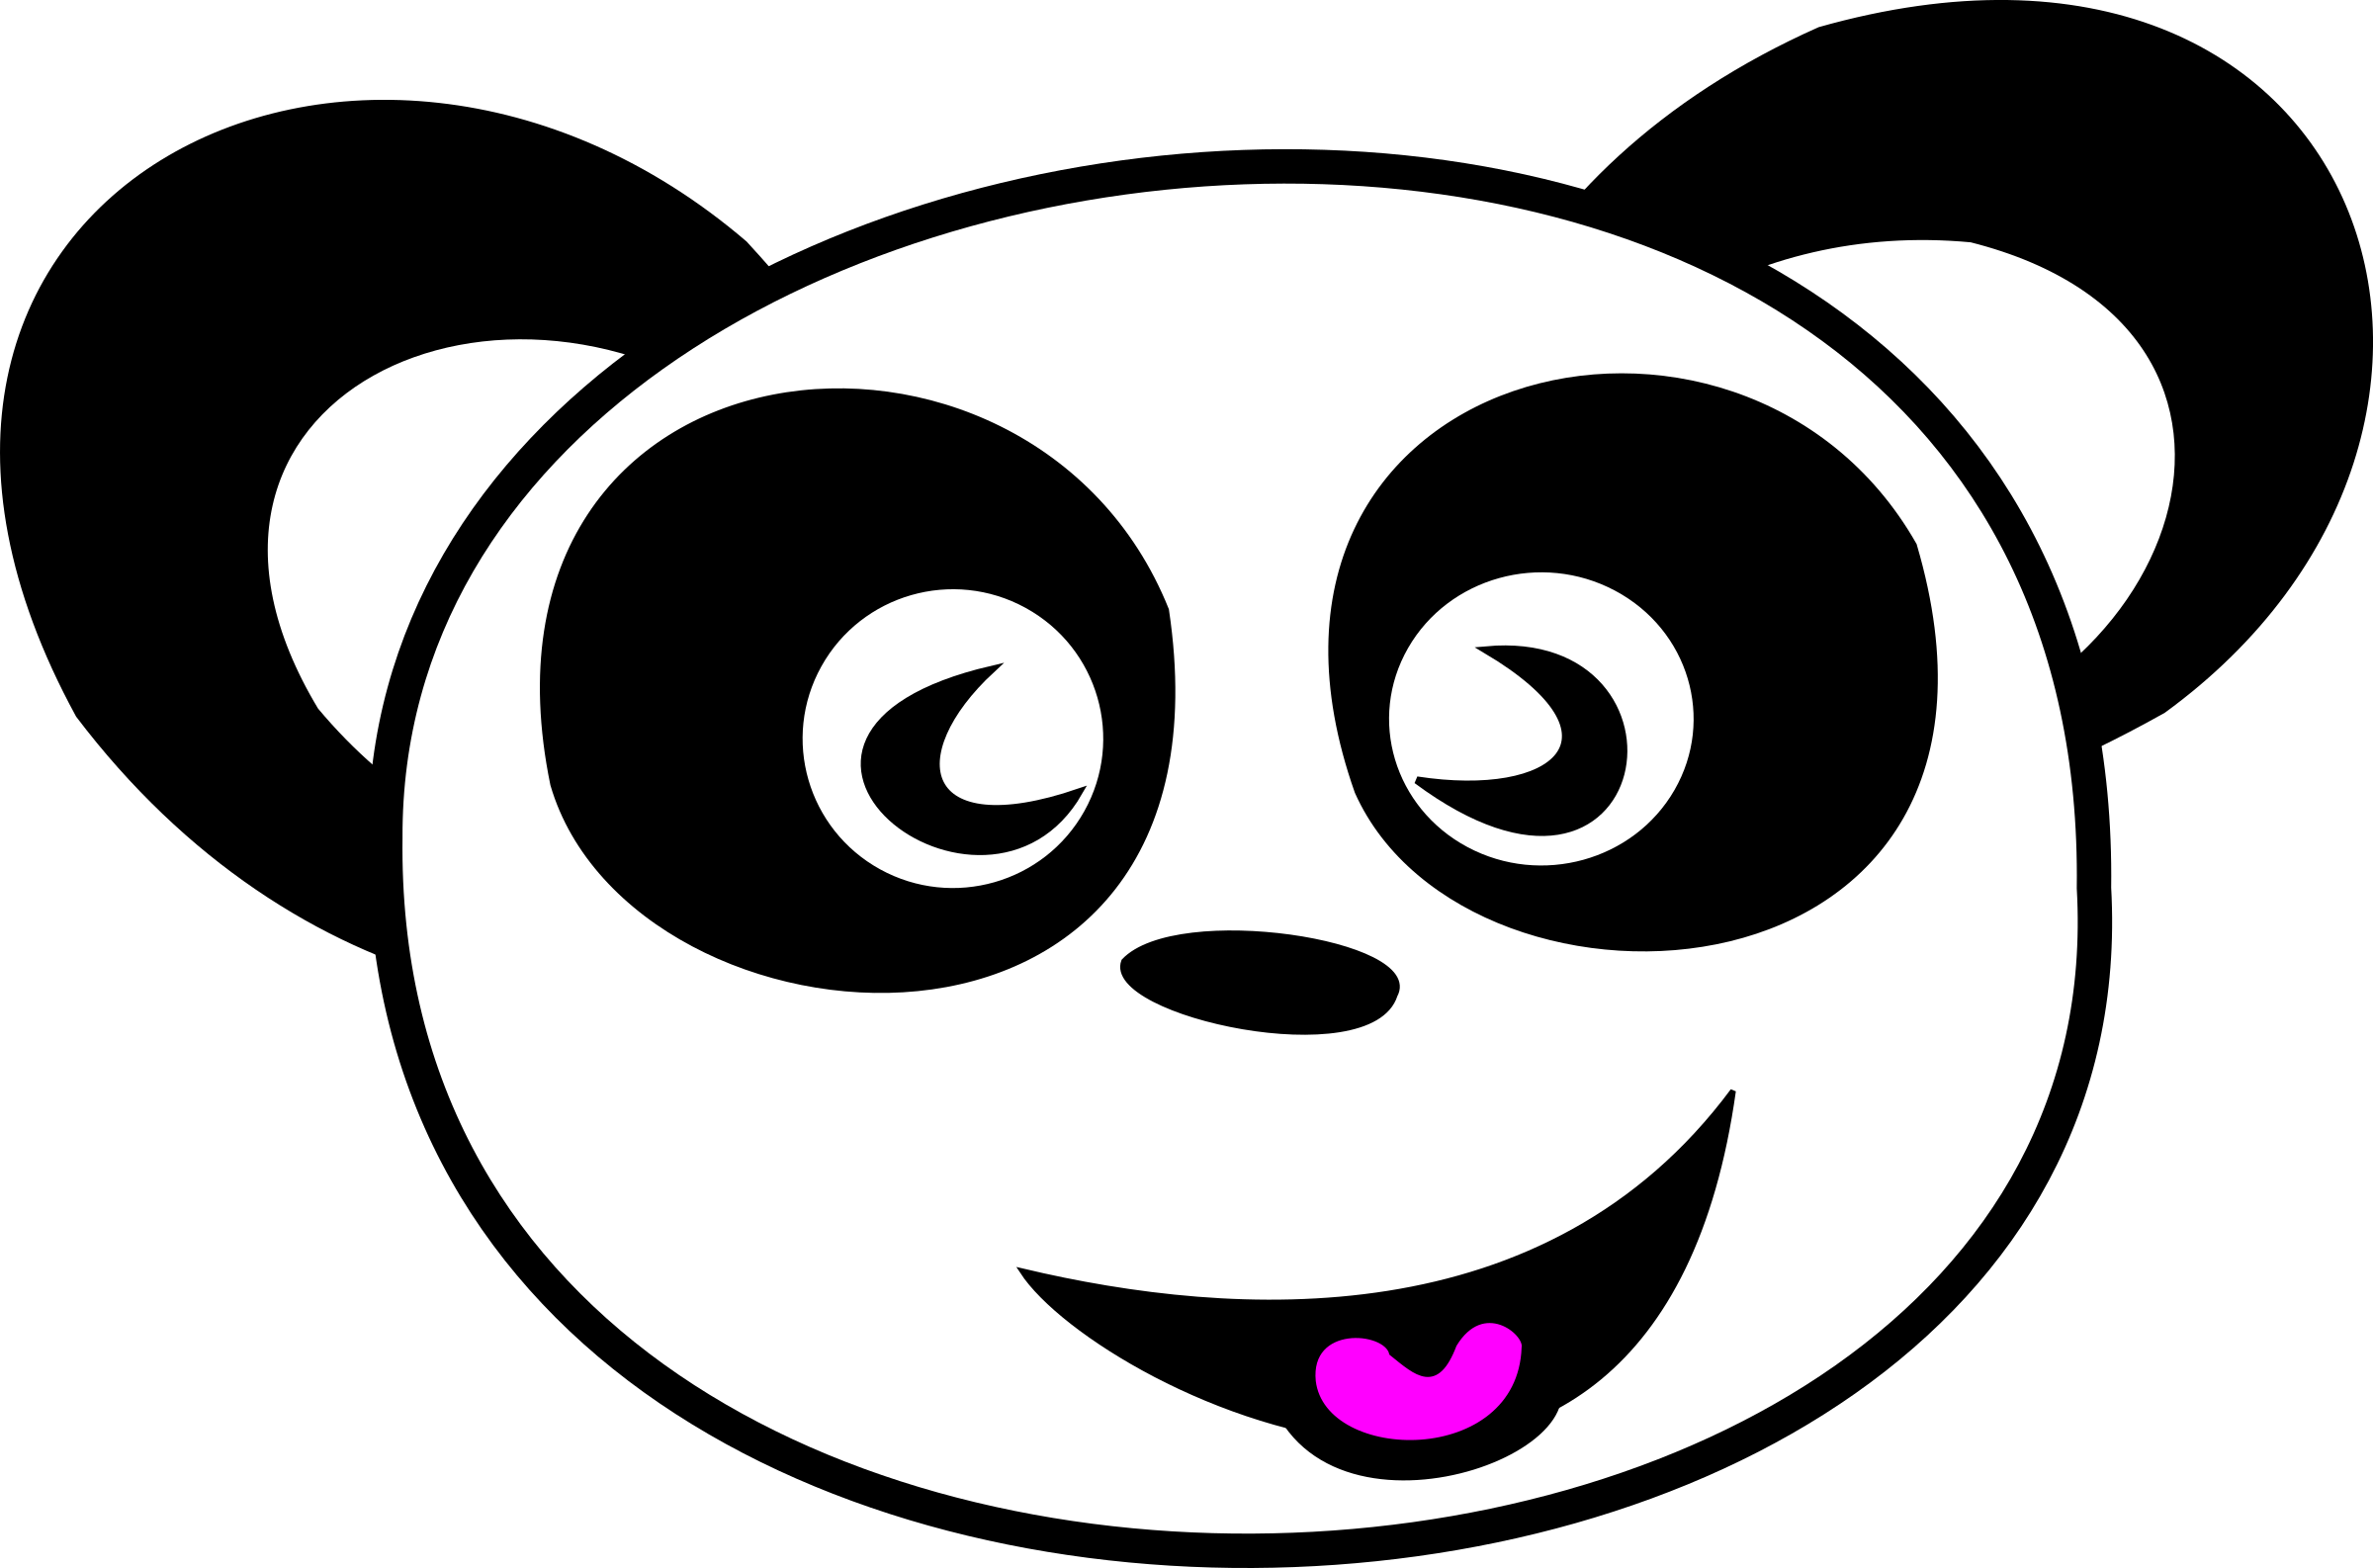 Smiley face clip art outline. Clipart happy panda big